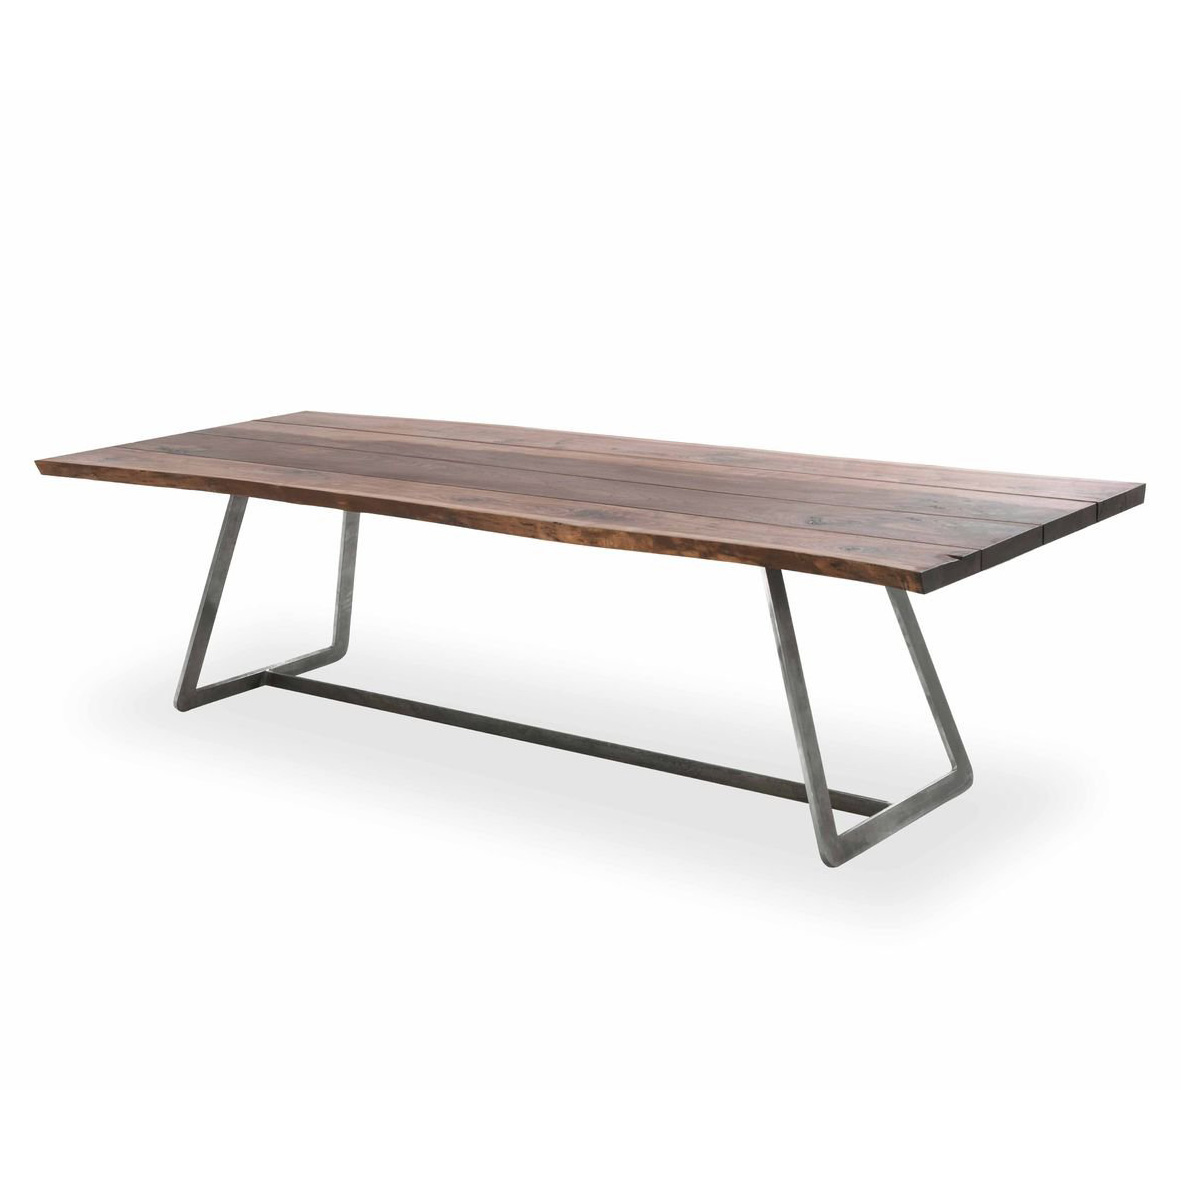 Calle Cult dining table from Riva 1920